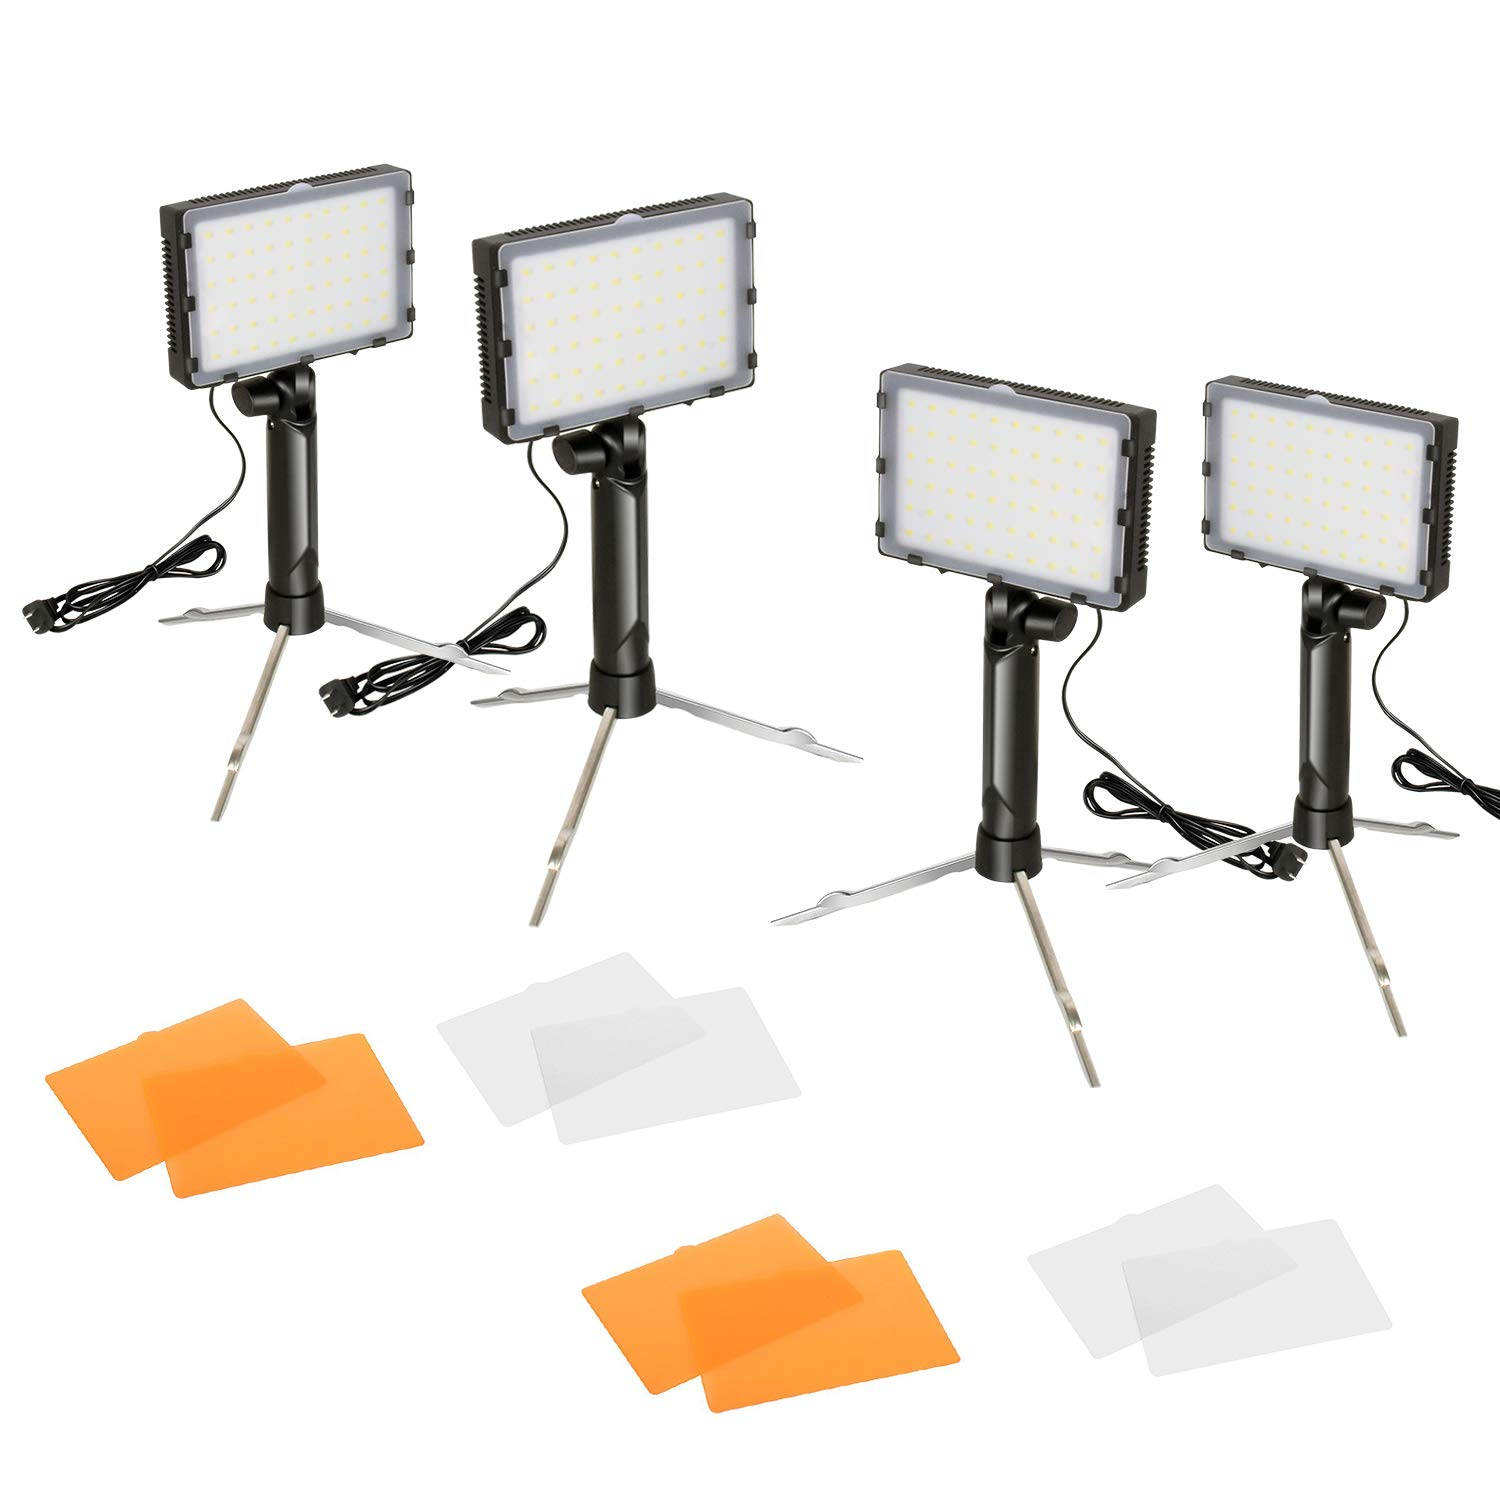 FUDESY Portable Continuous Photography Lighting Kit for Table Top Photo Video Studio Light Lamp, 60 LED Panel Light with Color Filters -4 Sets,FDS60DL4 by FUDESY